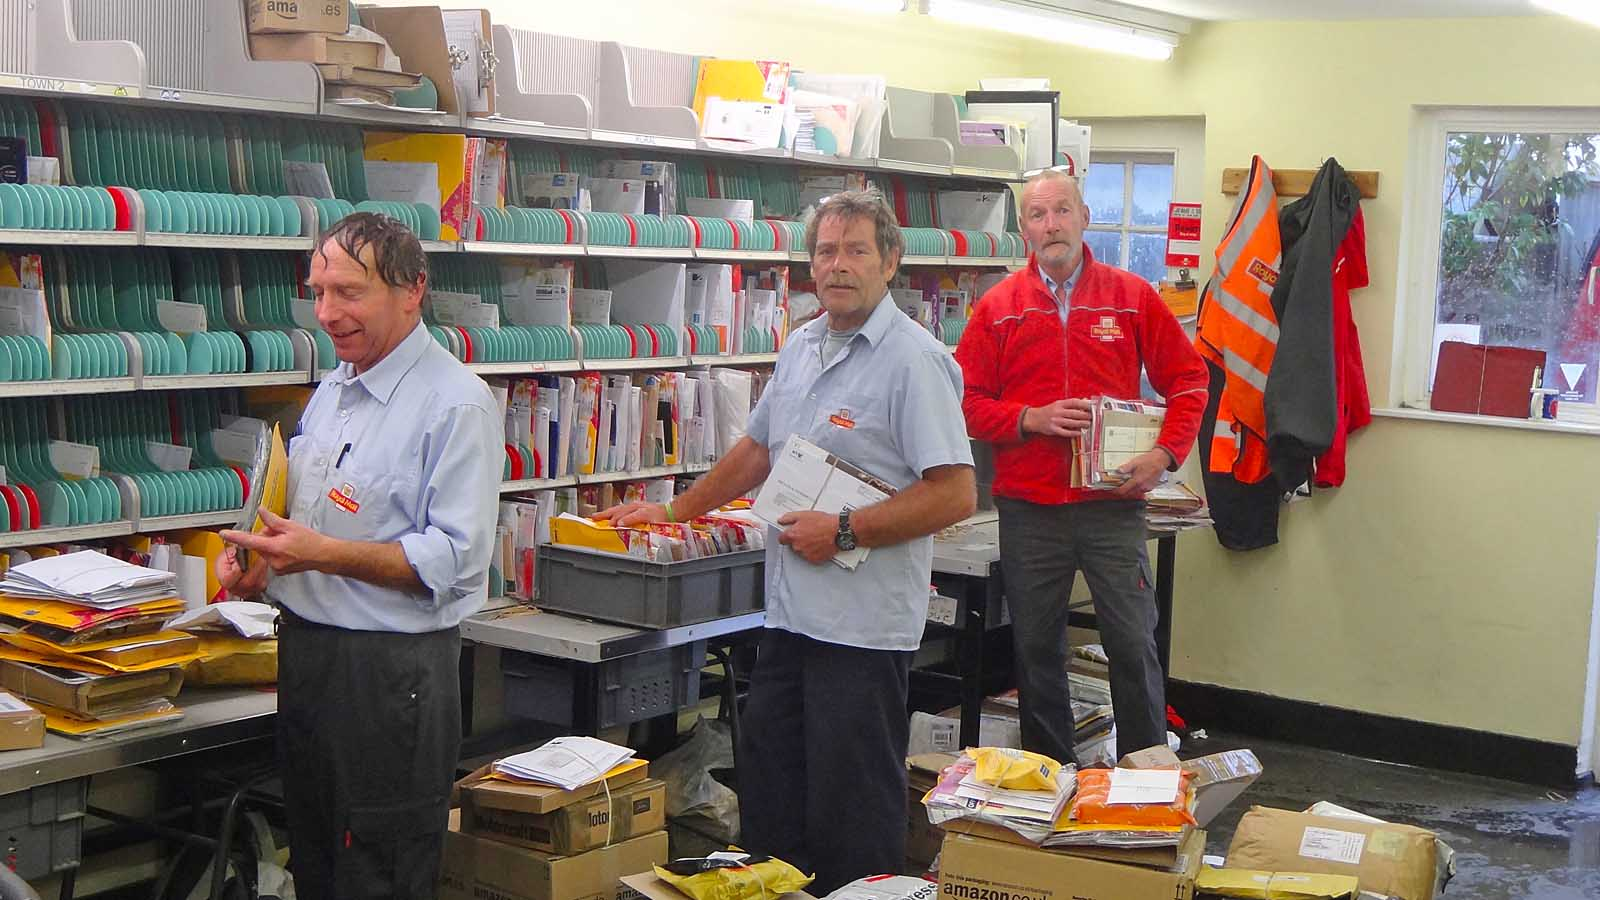 Scilly s postal staff to work until all christmas mail delivered scilly today - Post office working today ...